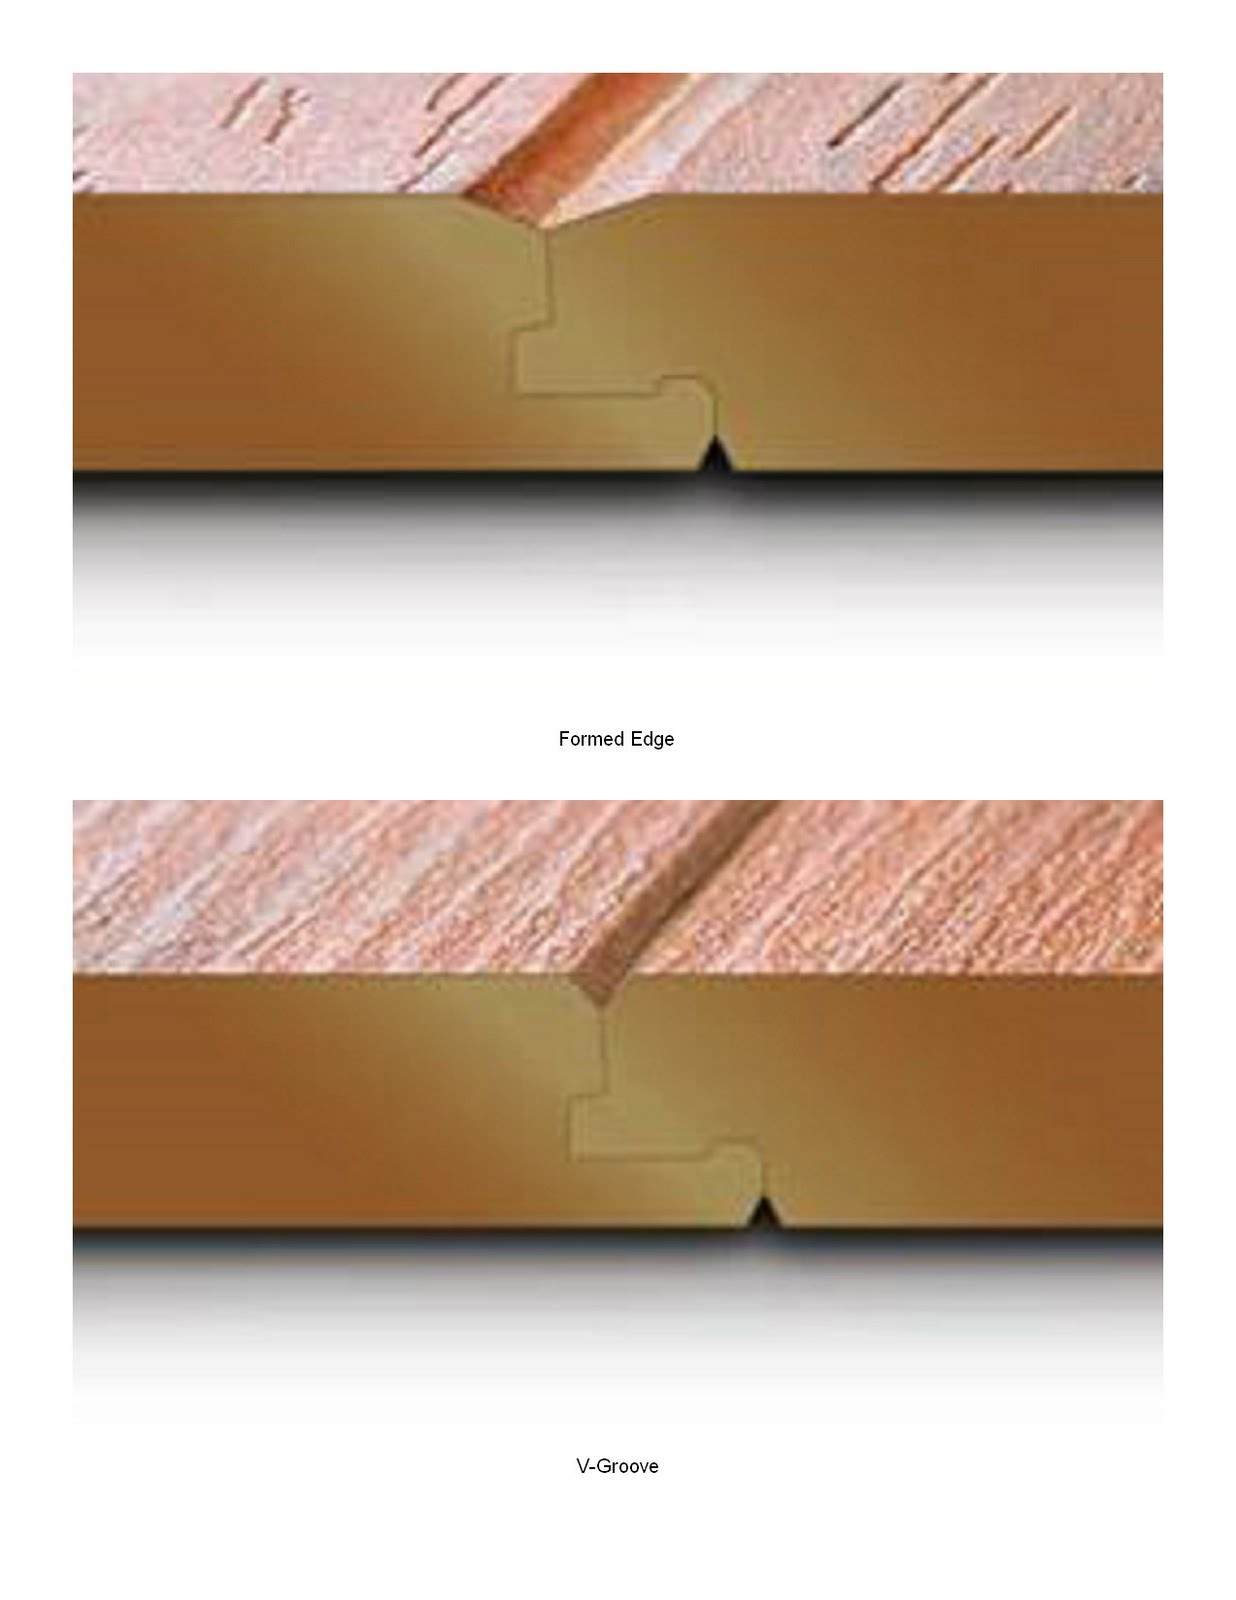 These Premium Surface Finishes Usually Comes With A V Groove Or Formed Edge Bevel When Planks Are Connected Together They Form To Make It